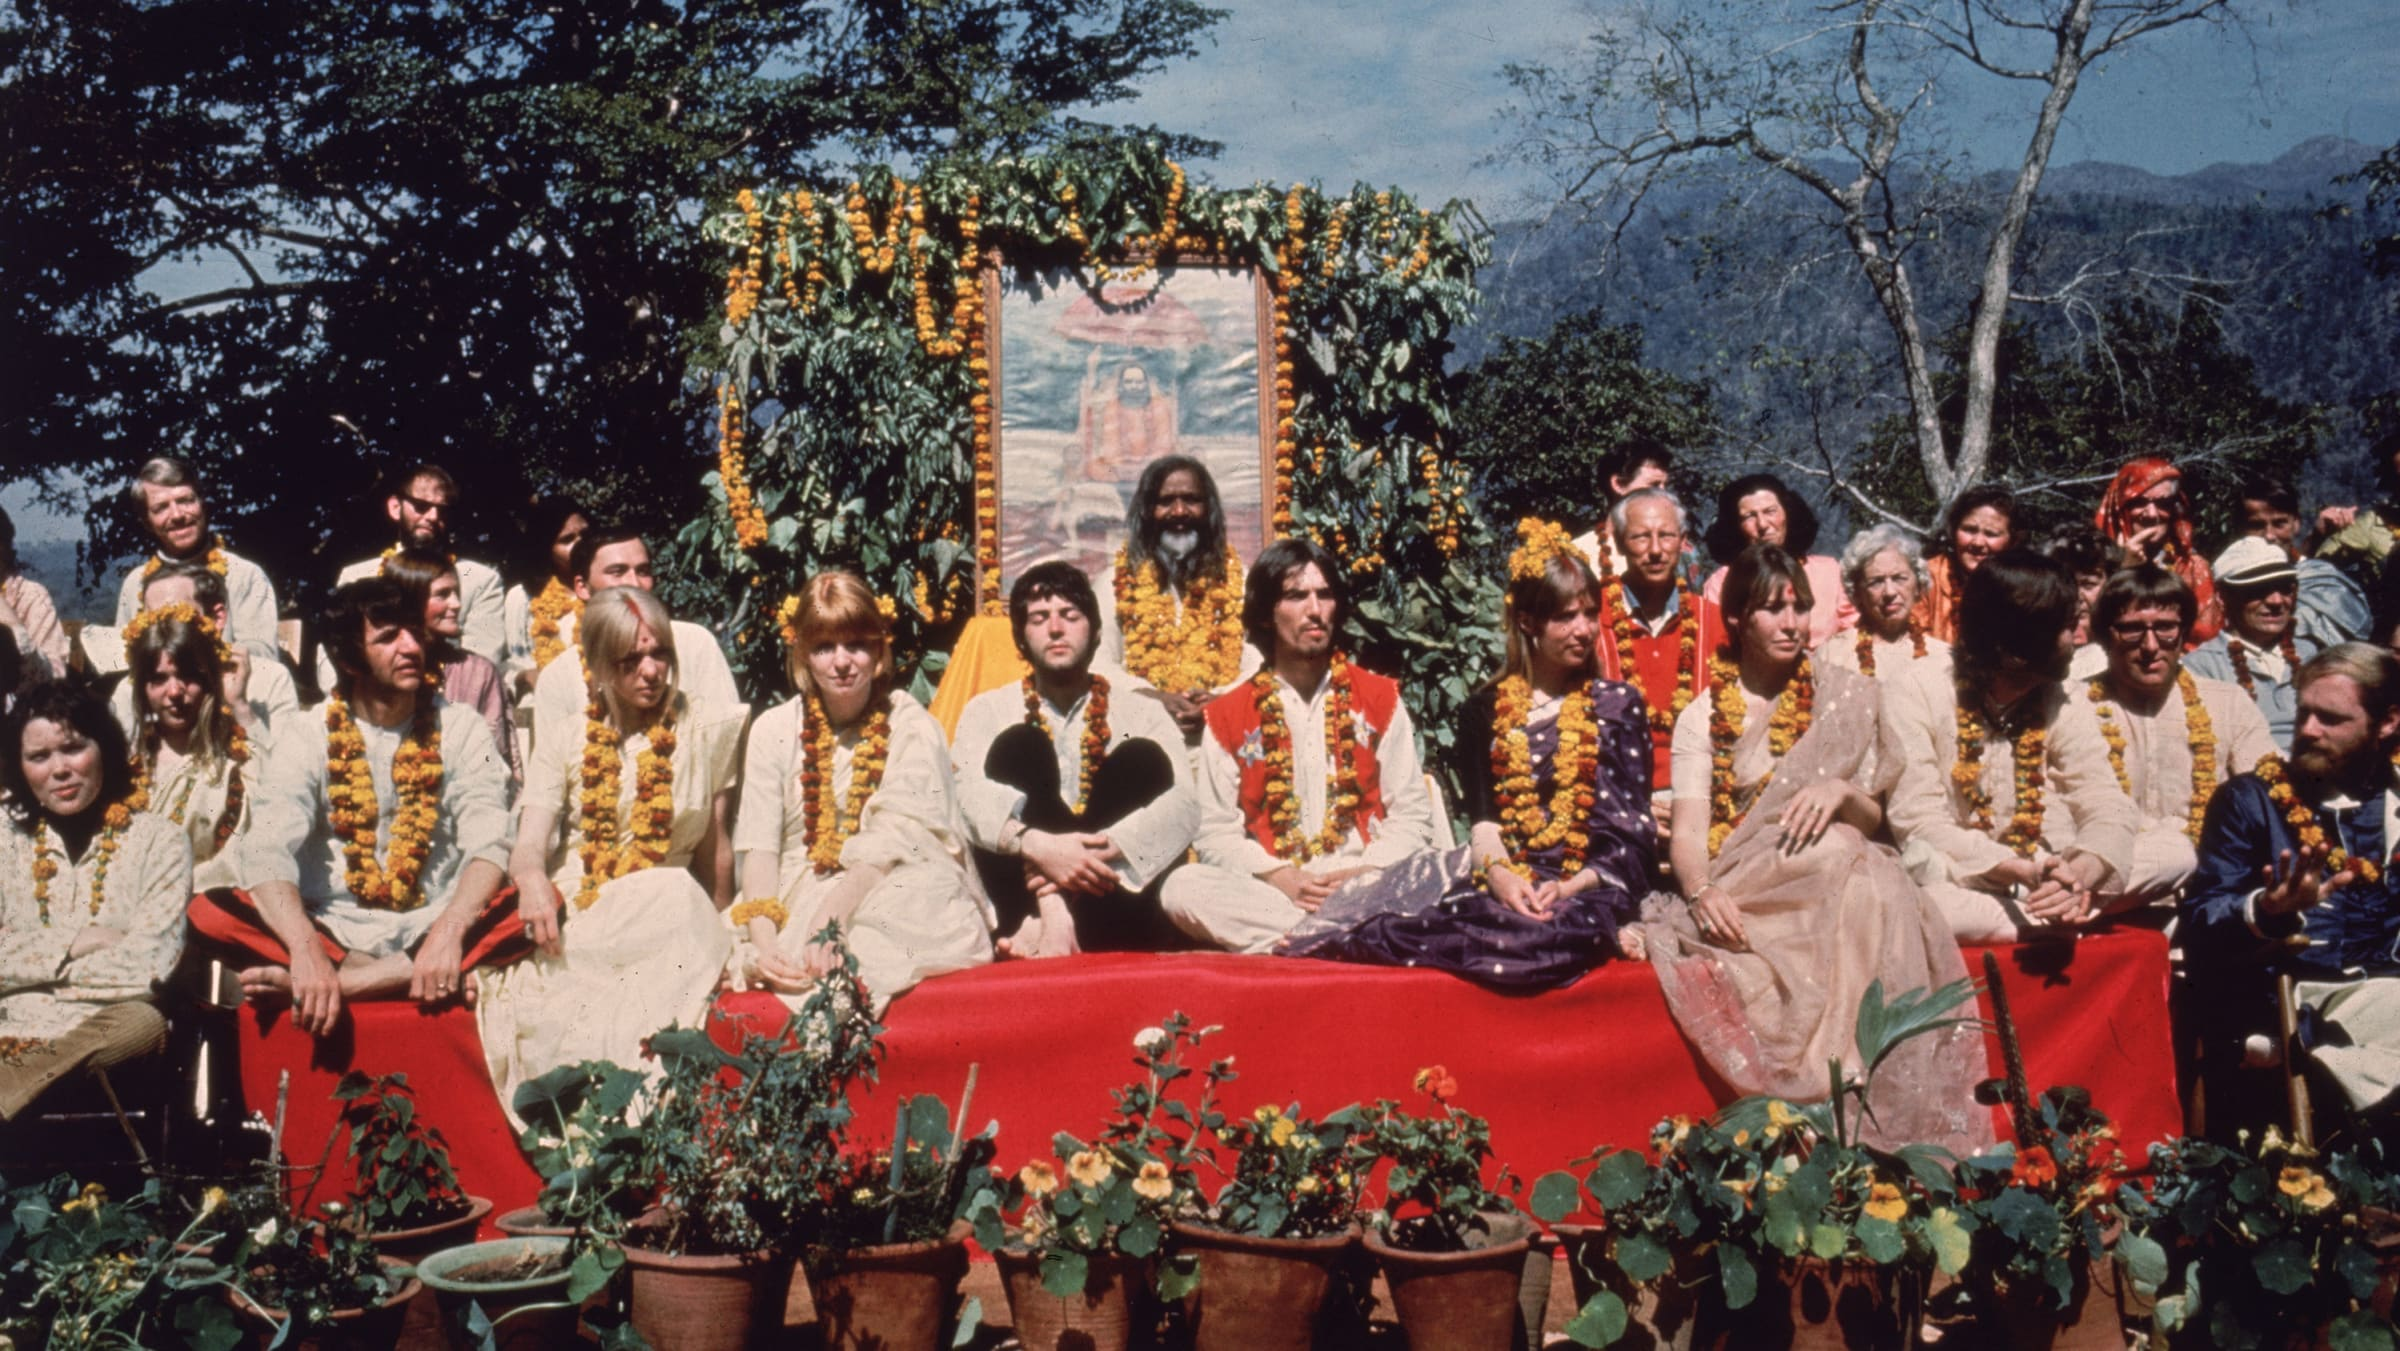 The Beatles Ashram in Rishikesh: Inside the Abandoned Compound